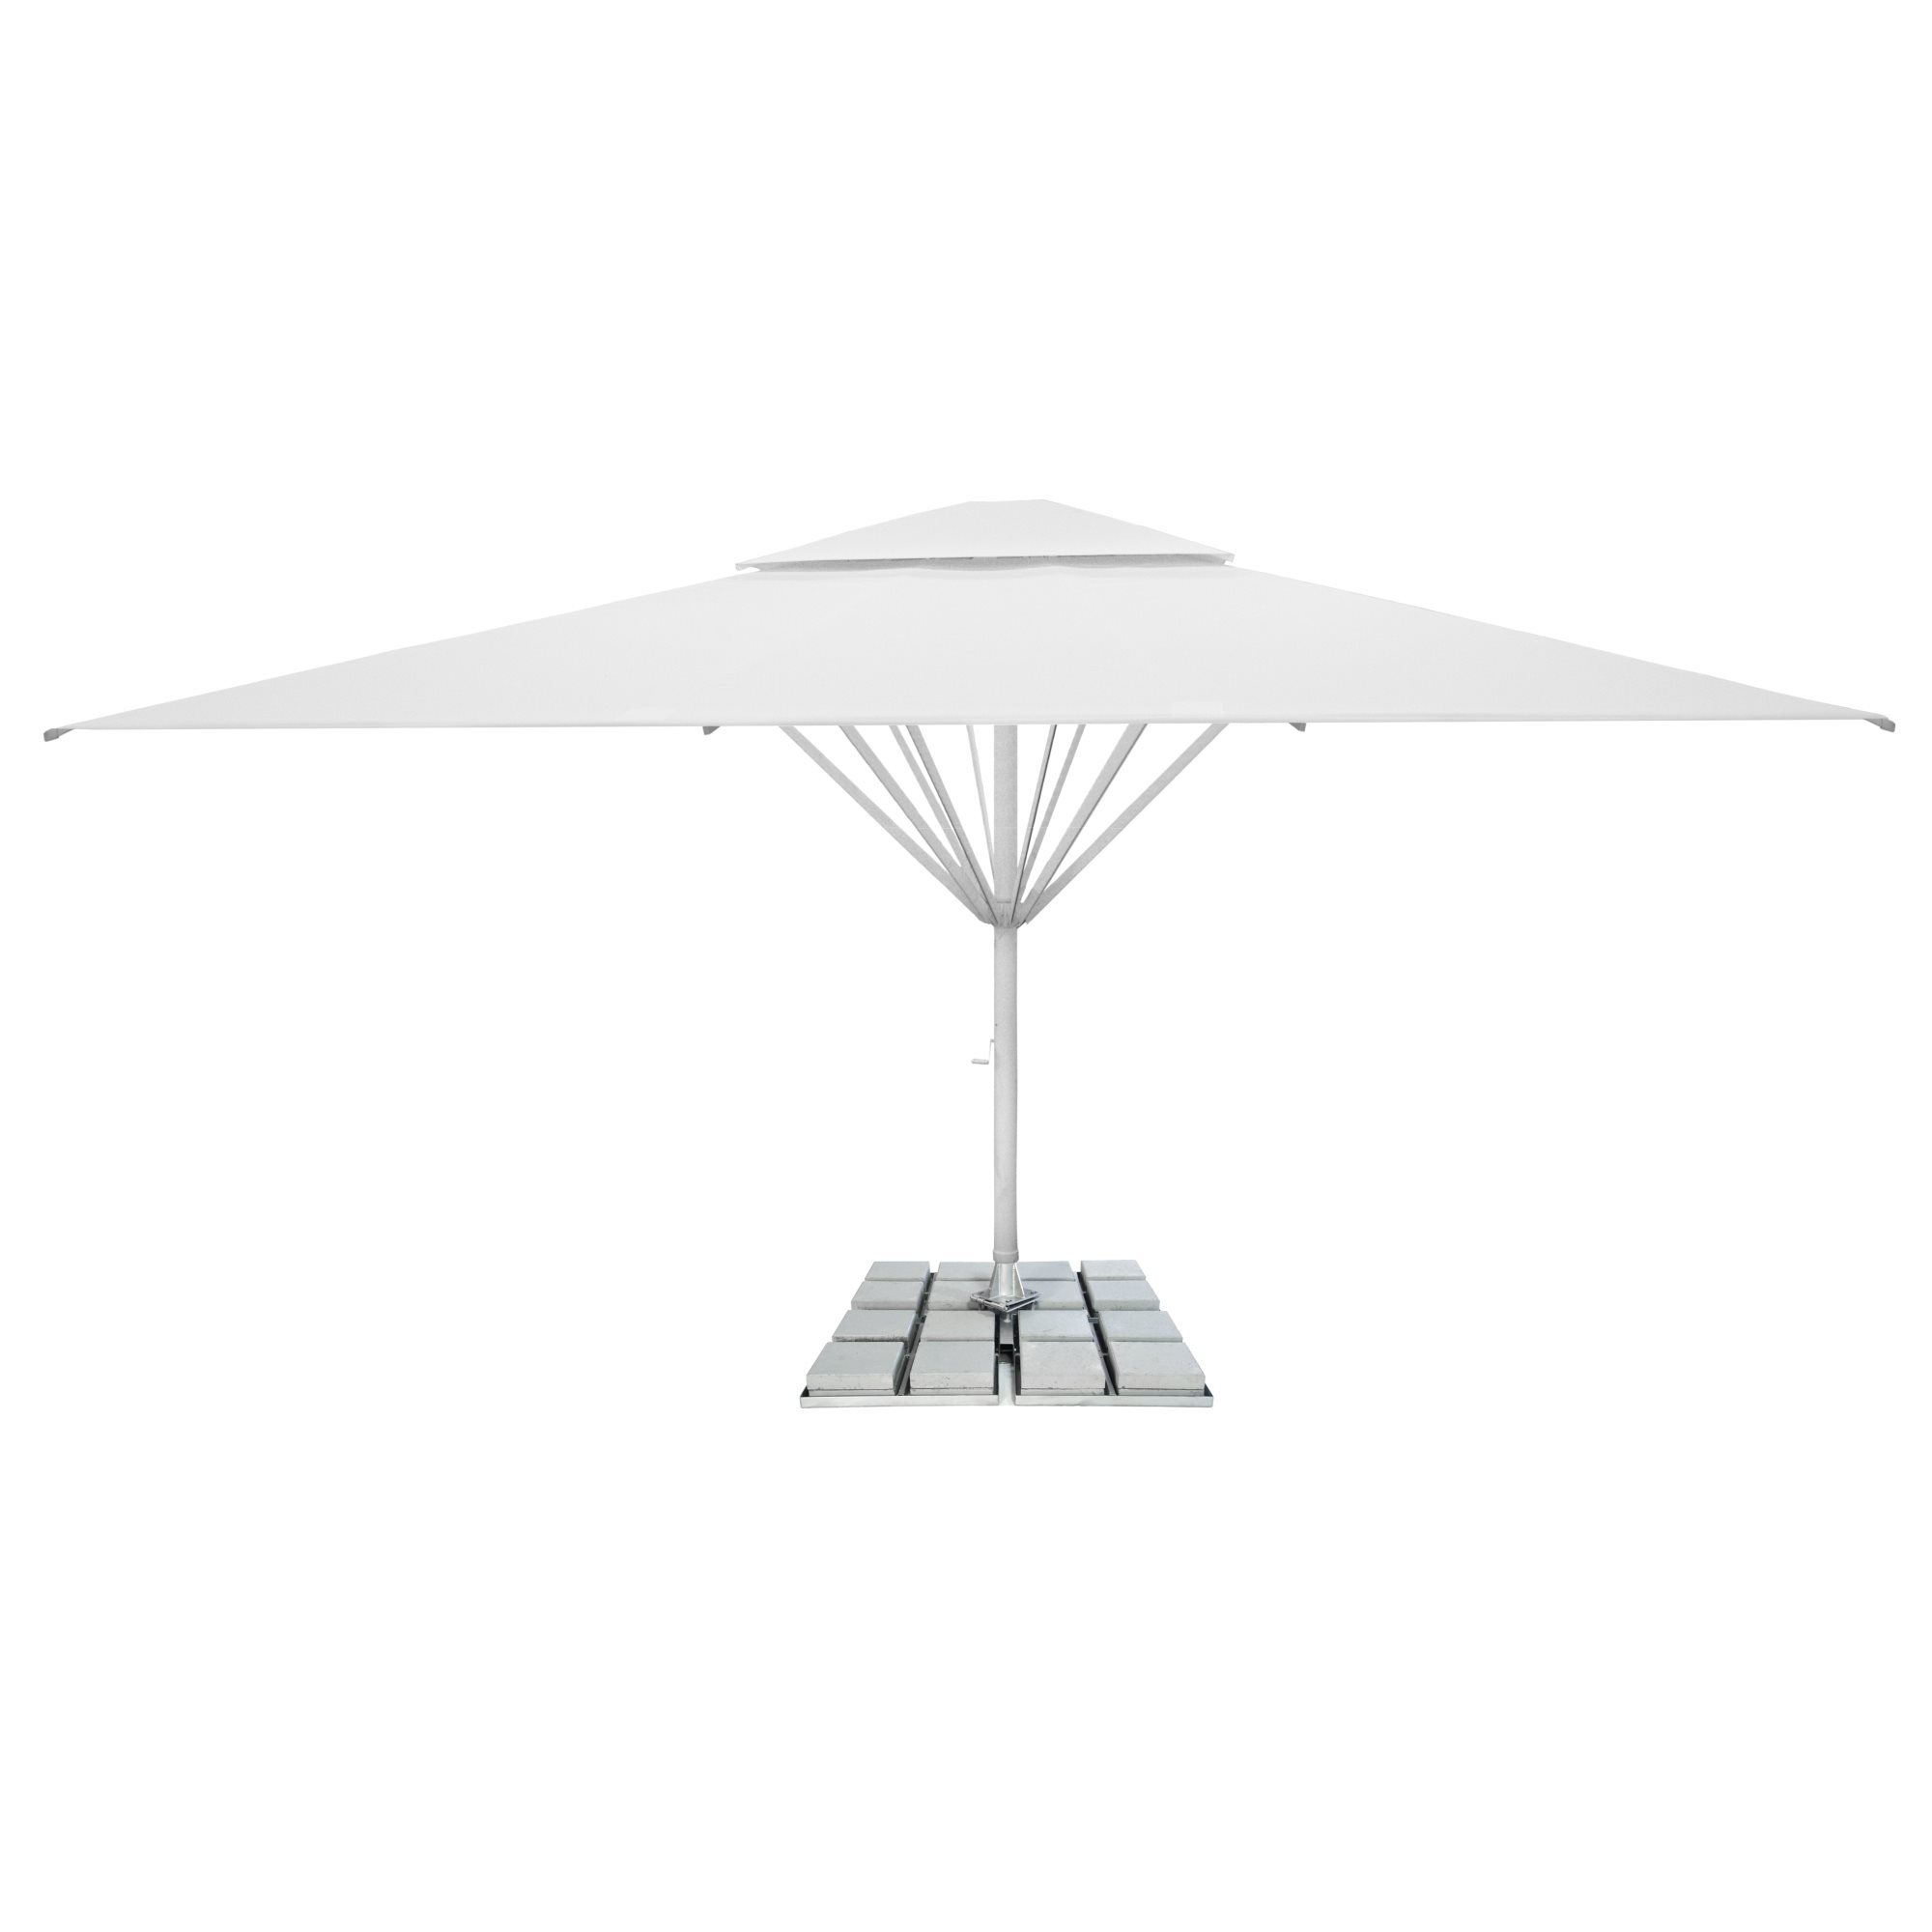 5. Giant Parasol Square 7m - with 2nd roof